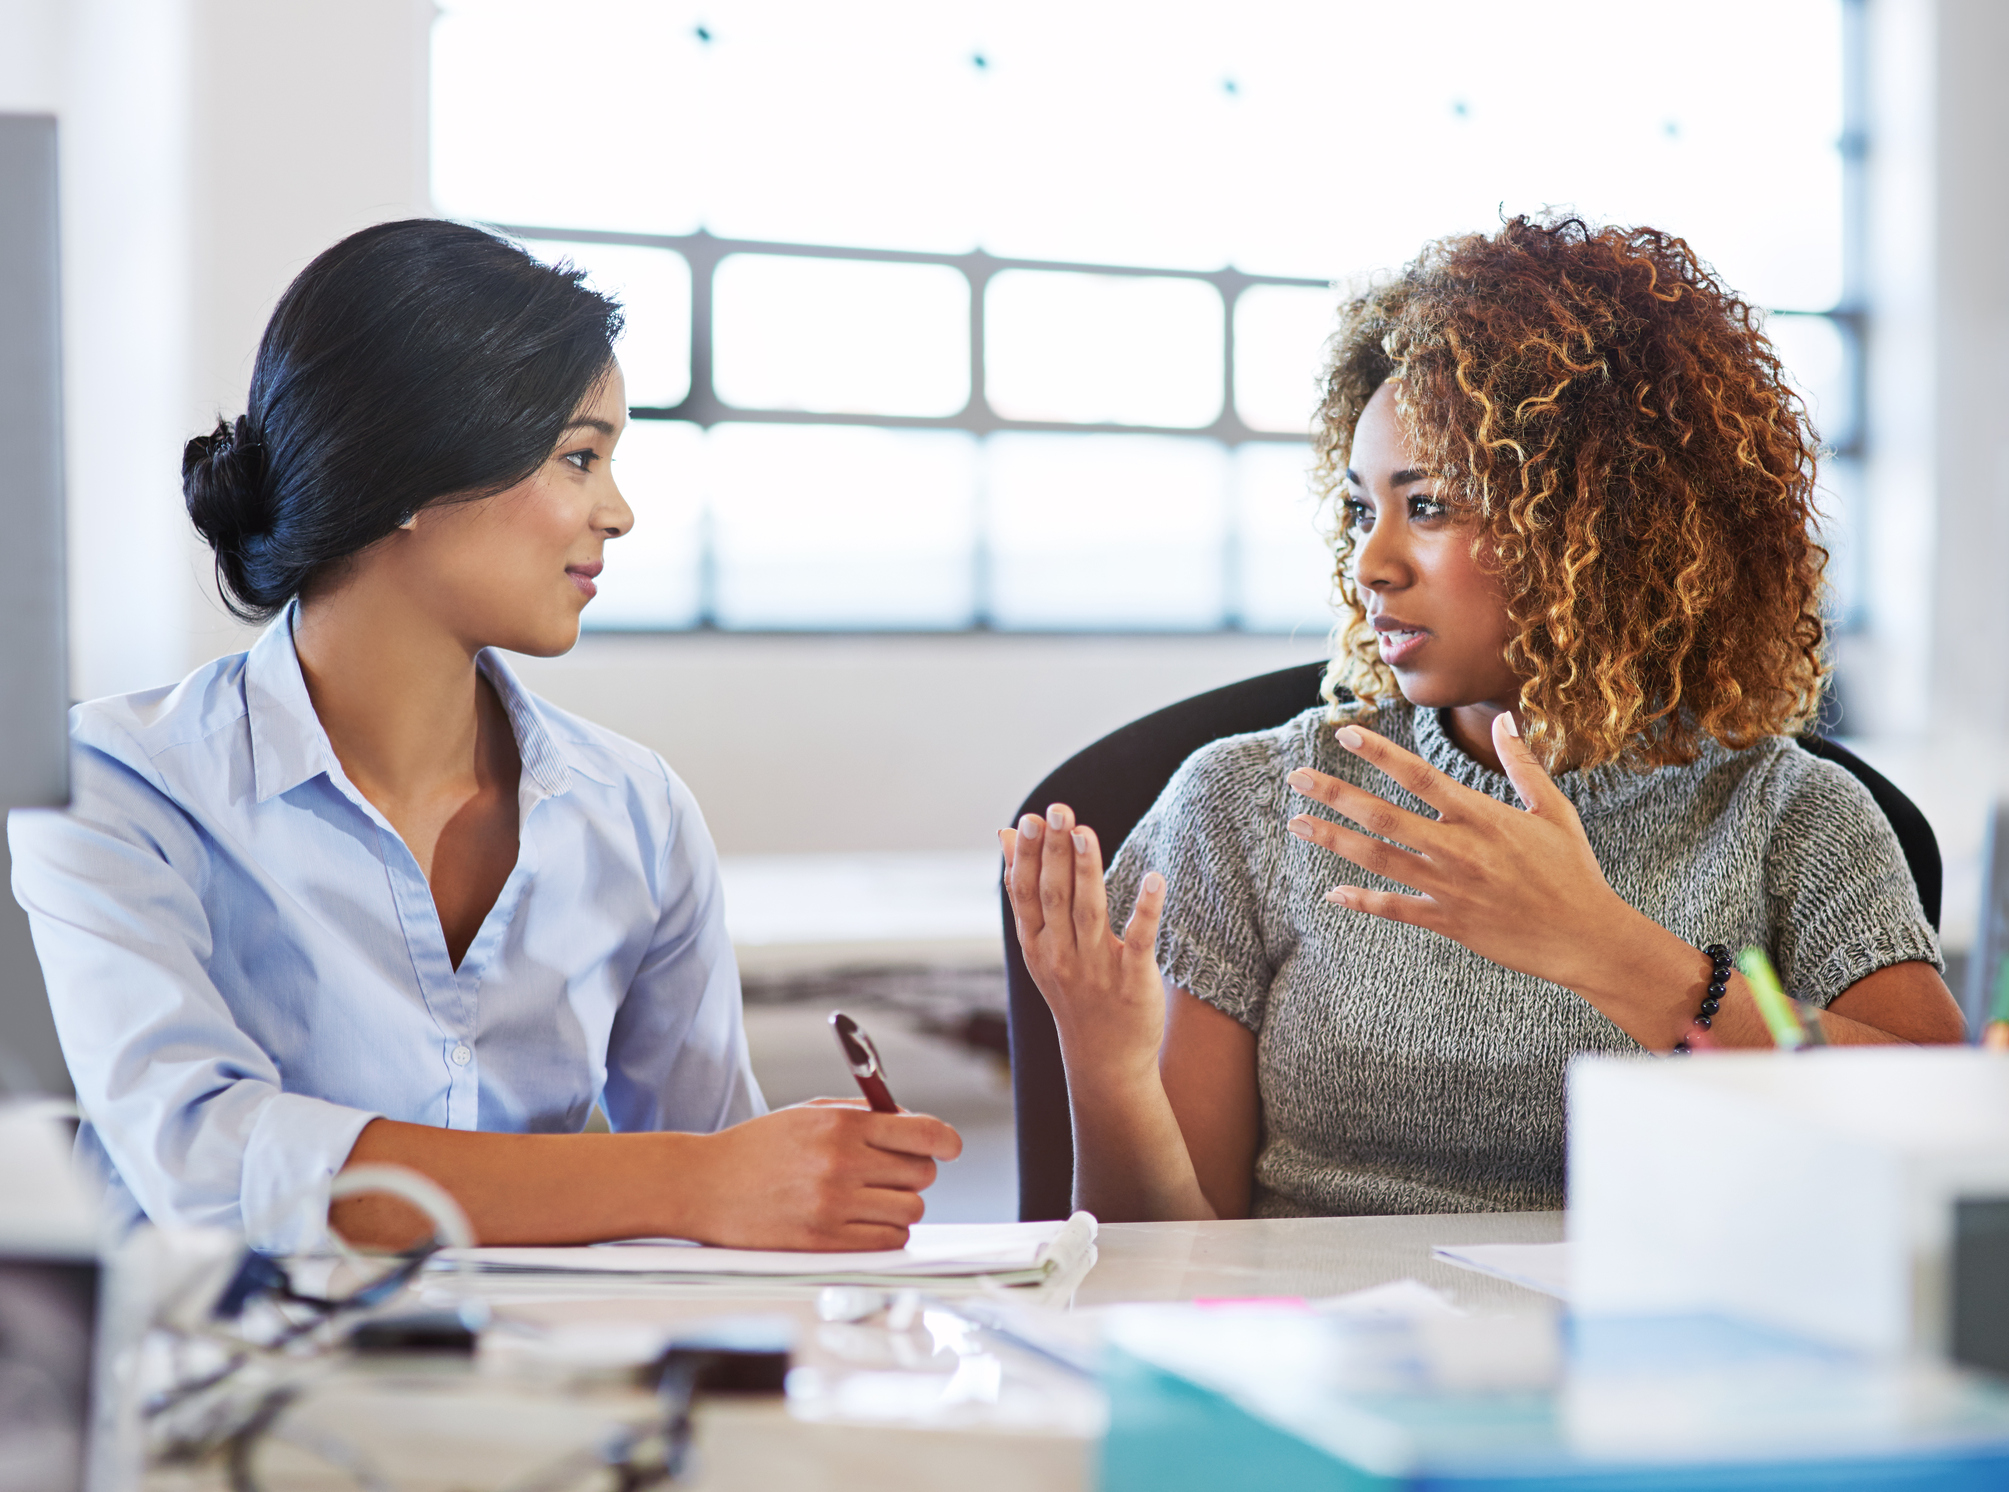 Photo Credit:  gradyreese/iStock / Getty Images . Two people at a table look at each other. One of them holds a pen, the other is gesturing while speaking.